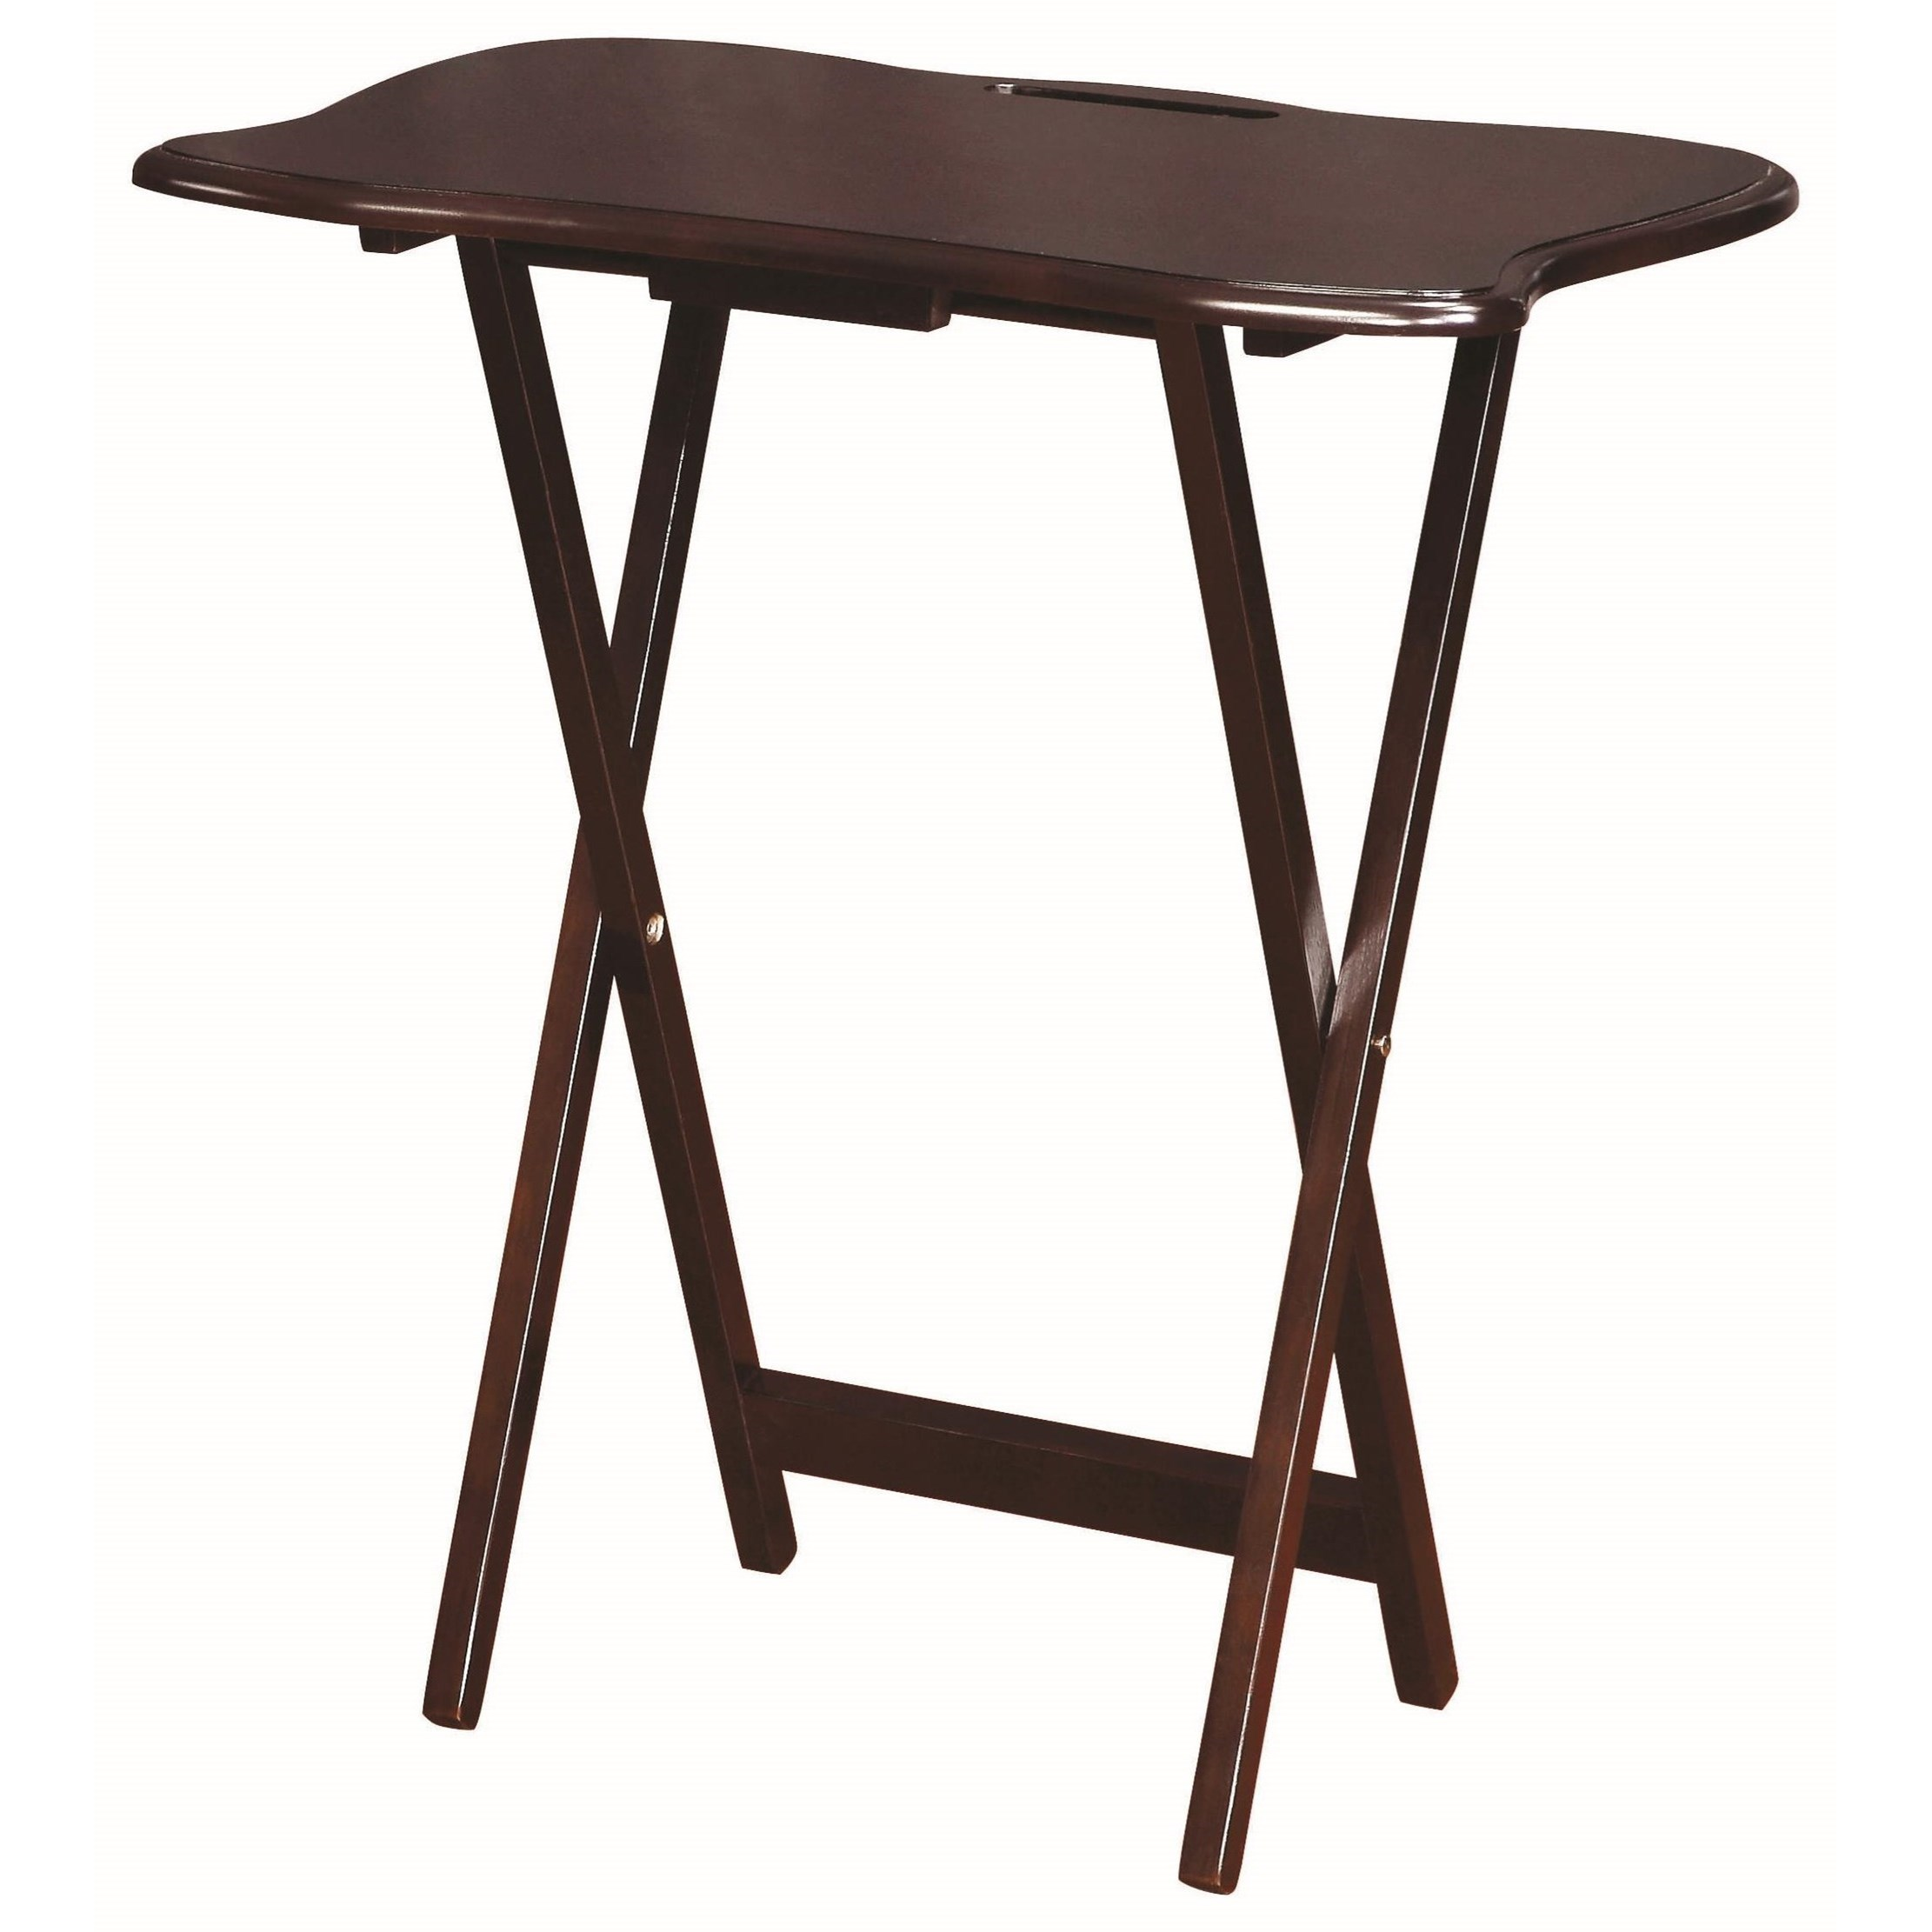 Coaster Accent Tables Tray Table - Item Number: 902717